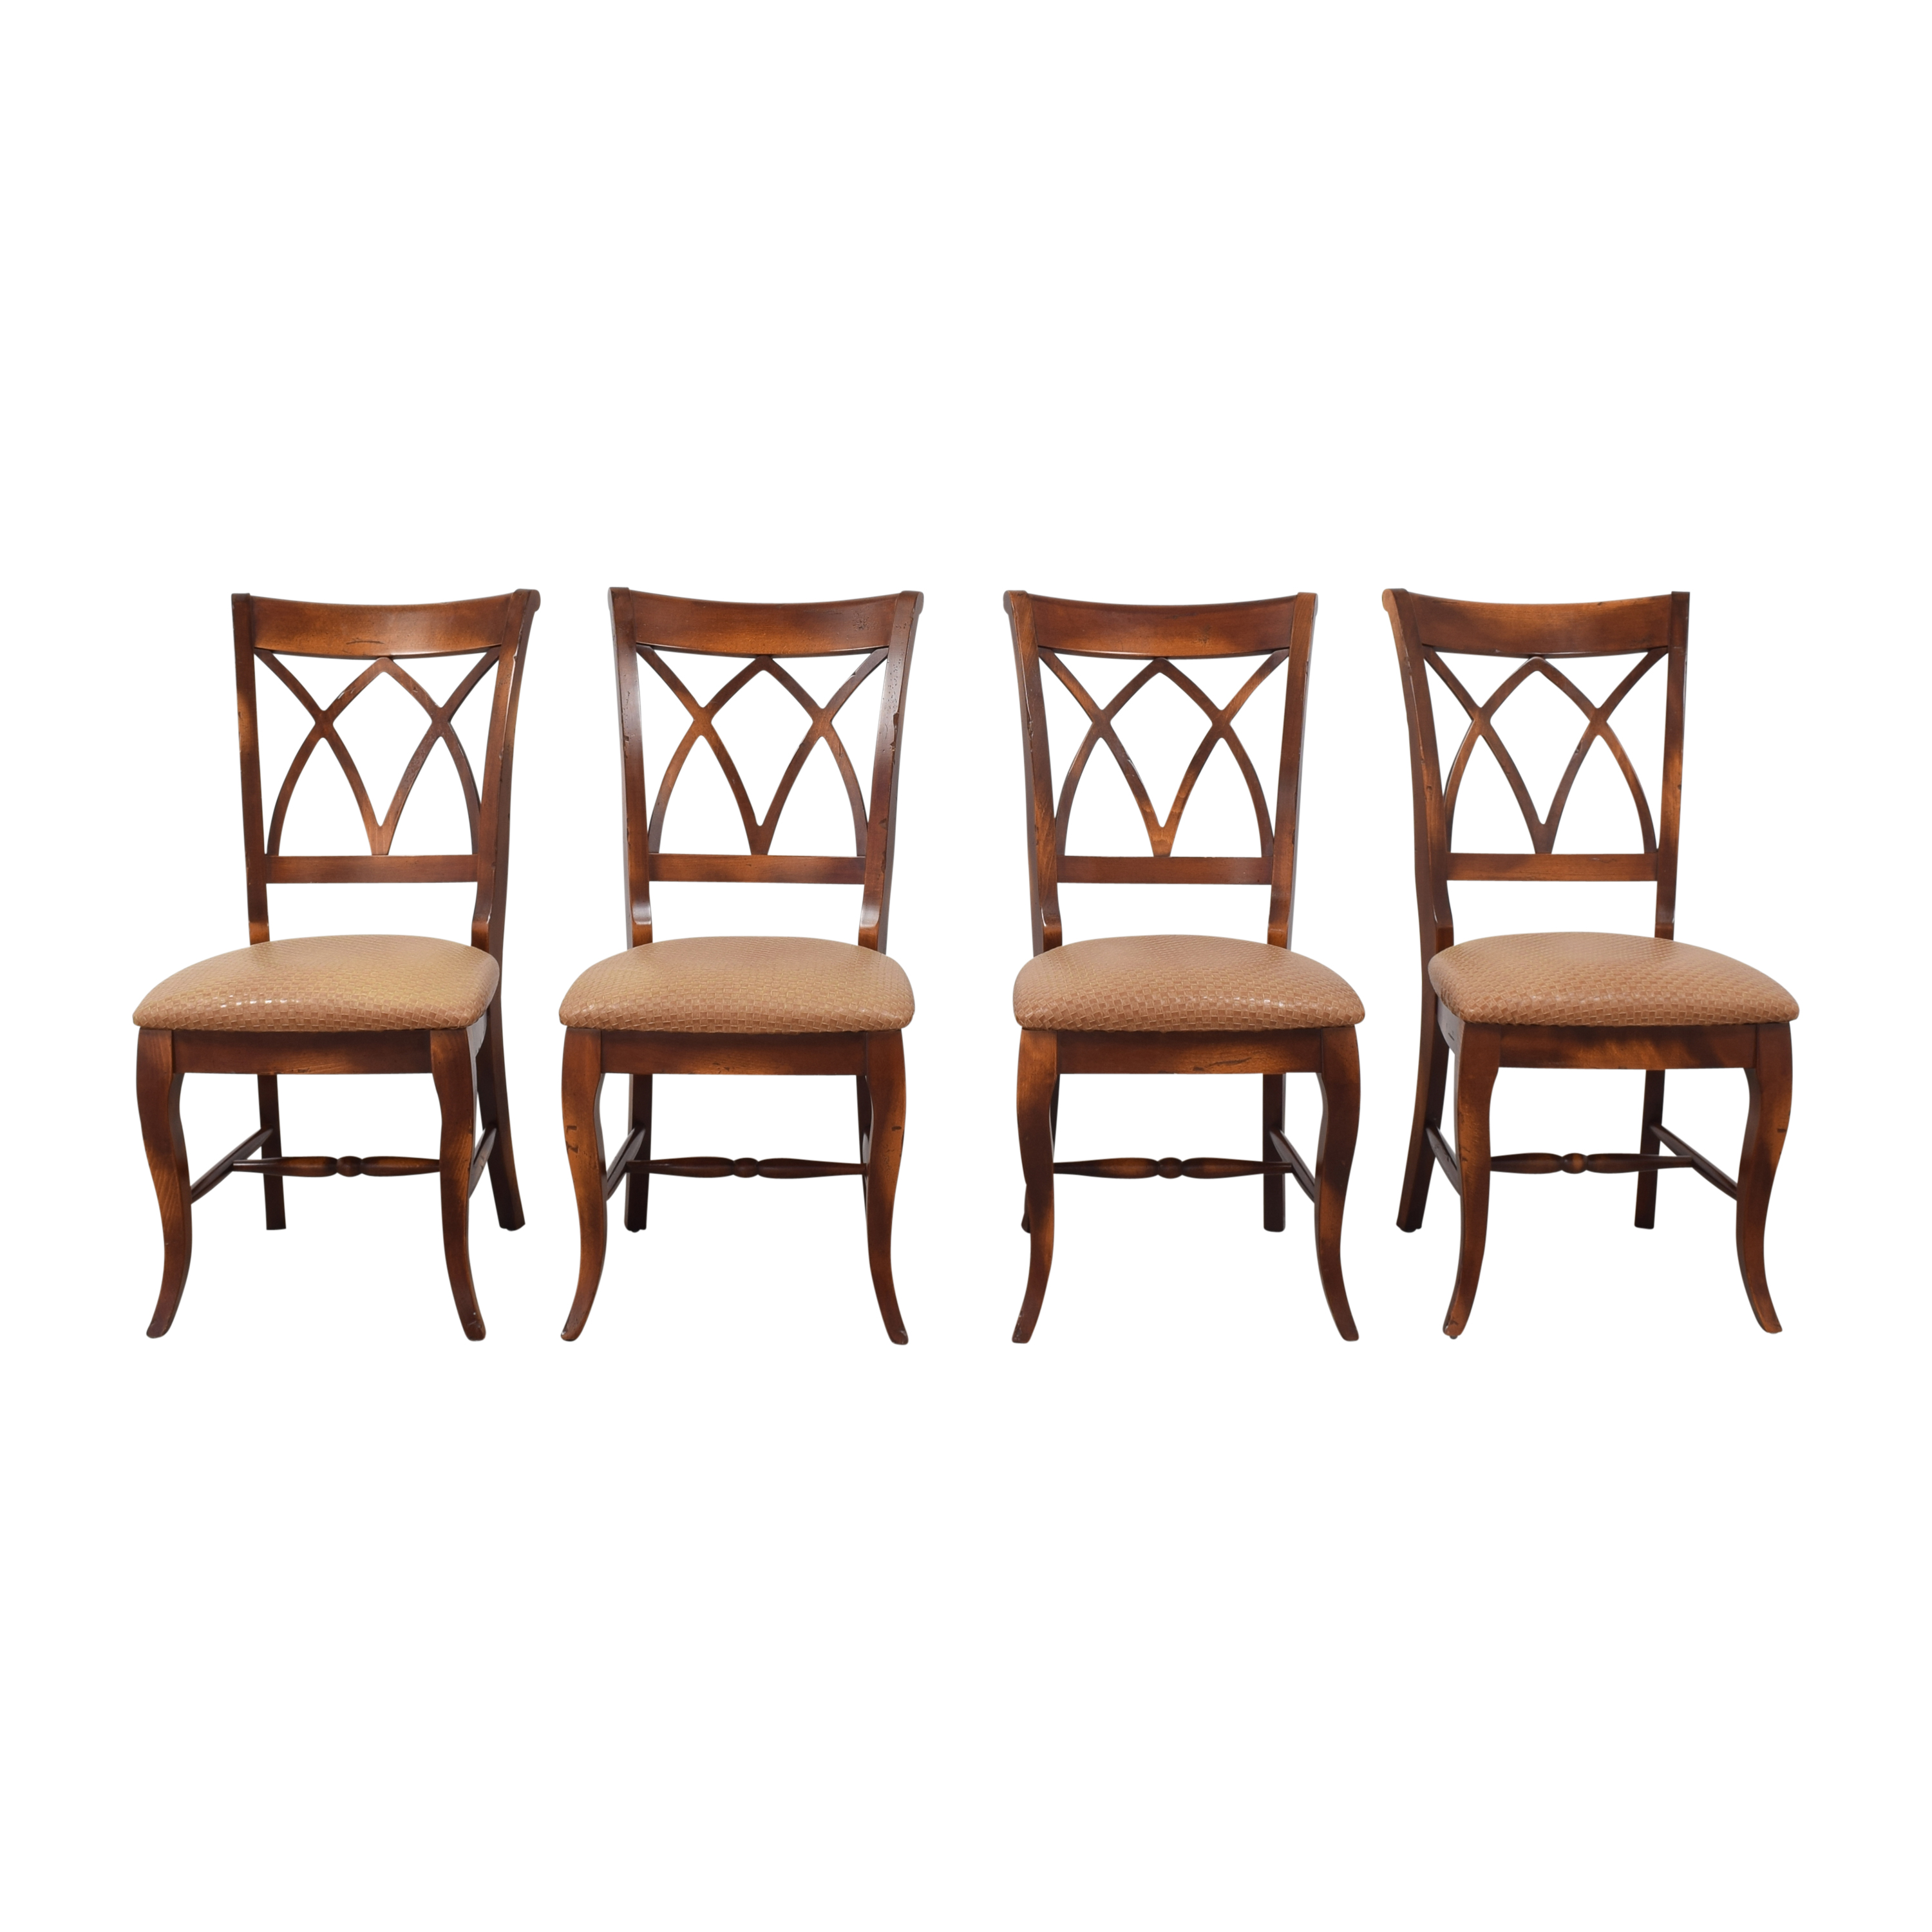 Saloom Saloom Model 18 Upholstered Dining Side Chairs used